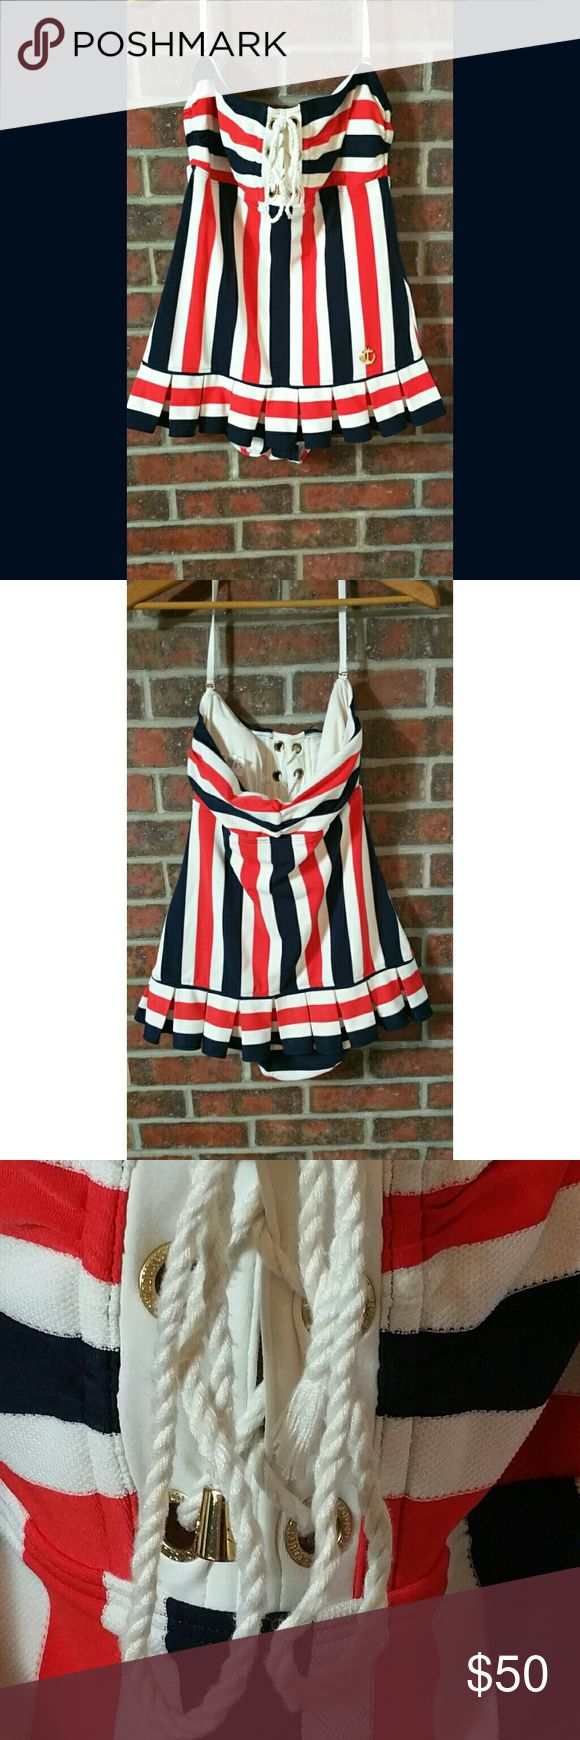 Juicy Couture Siren red white blue swimdress large Juicy Couture swimsuit size large. Red white and blue stripes. Halter style.  Nautical style perfect for the 4th of July. In gently used condition. It is missing a rivet on the front tie. Juicy Couture Swim One Pieces